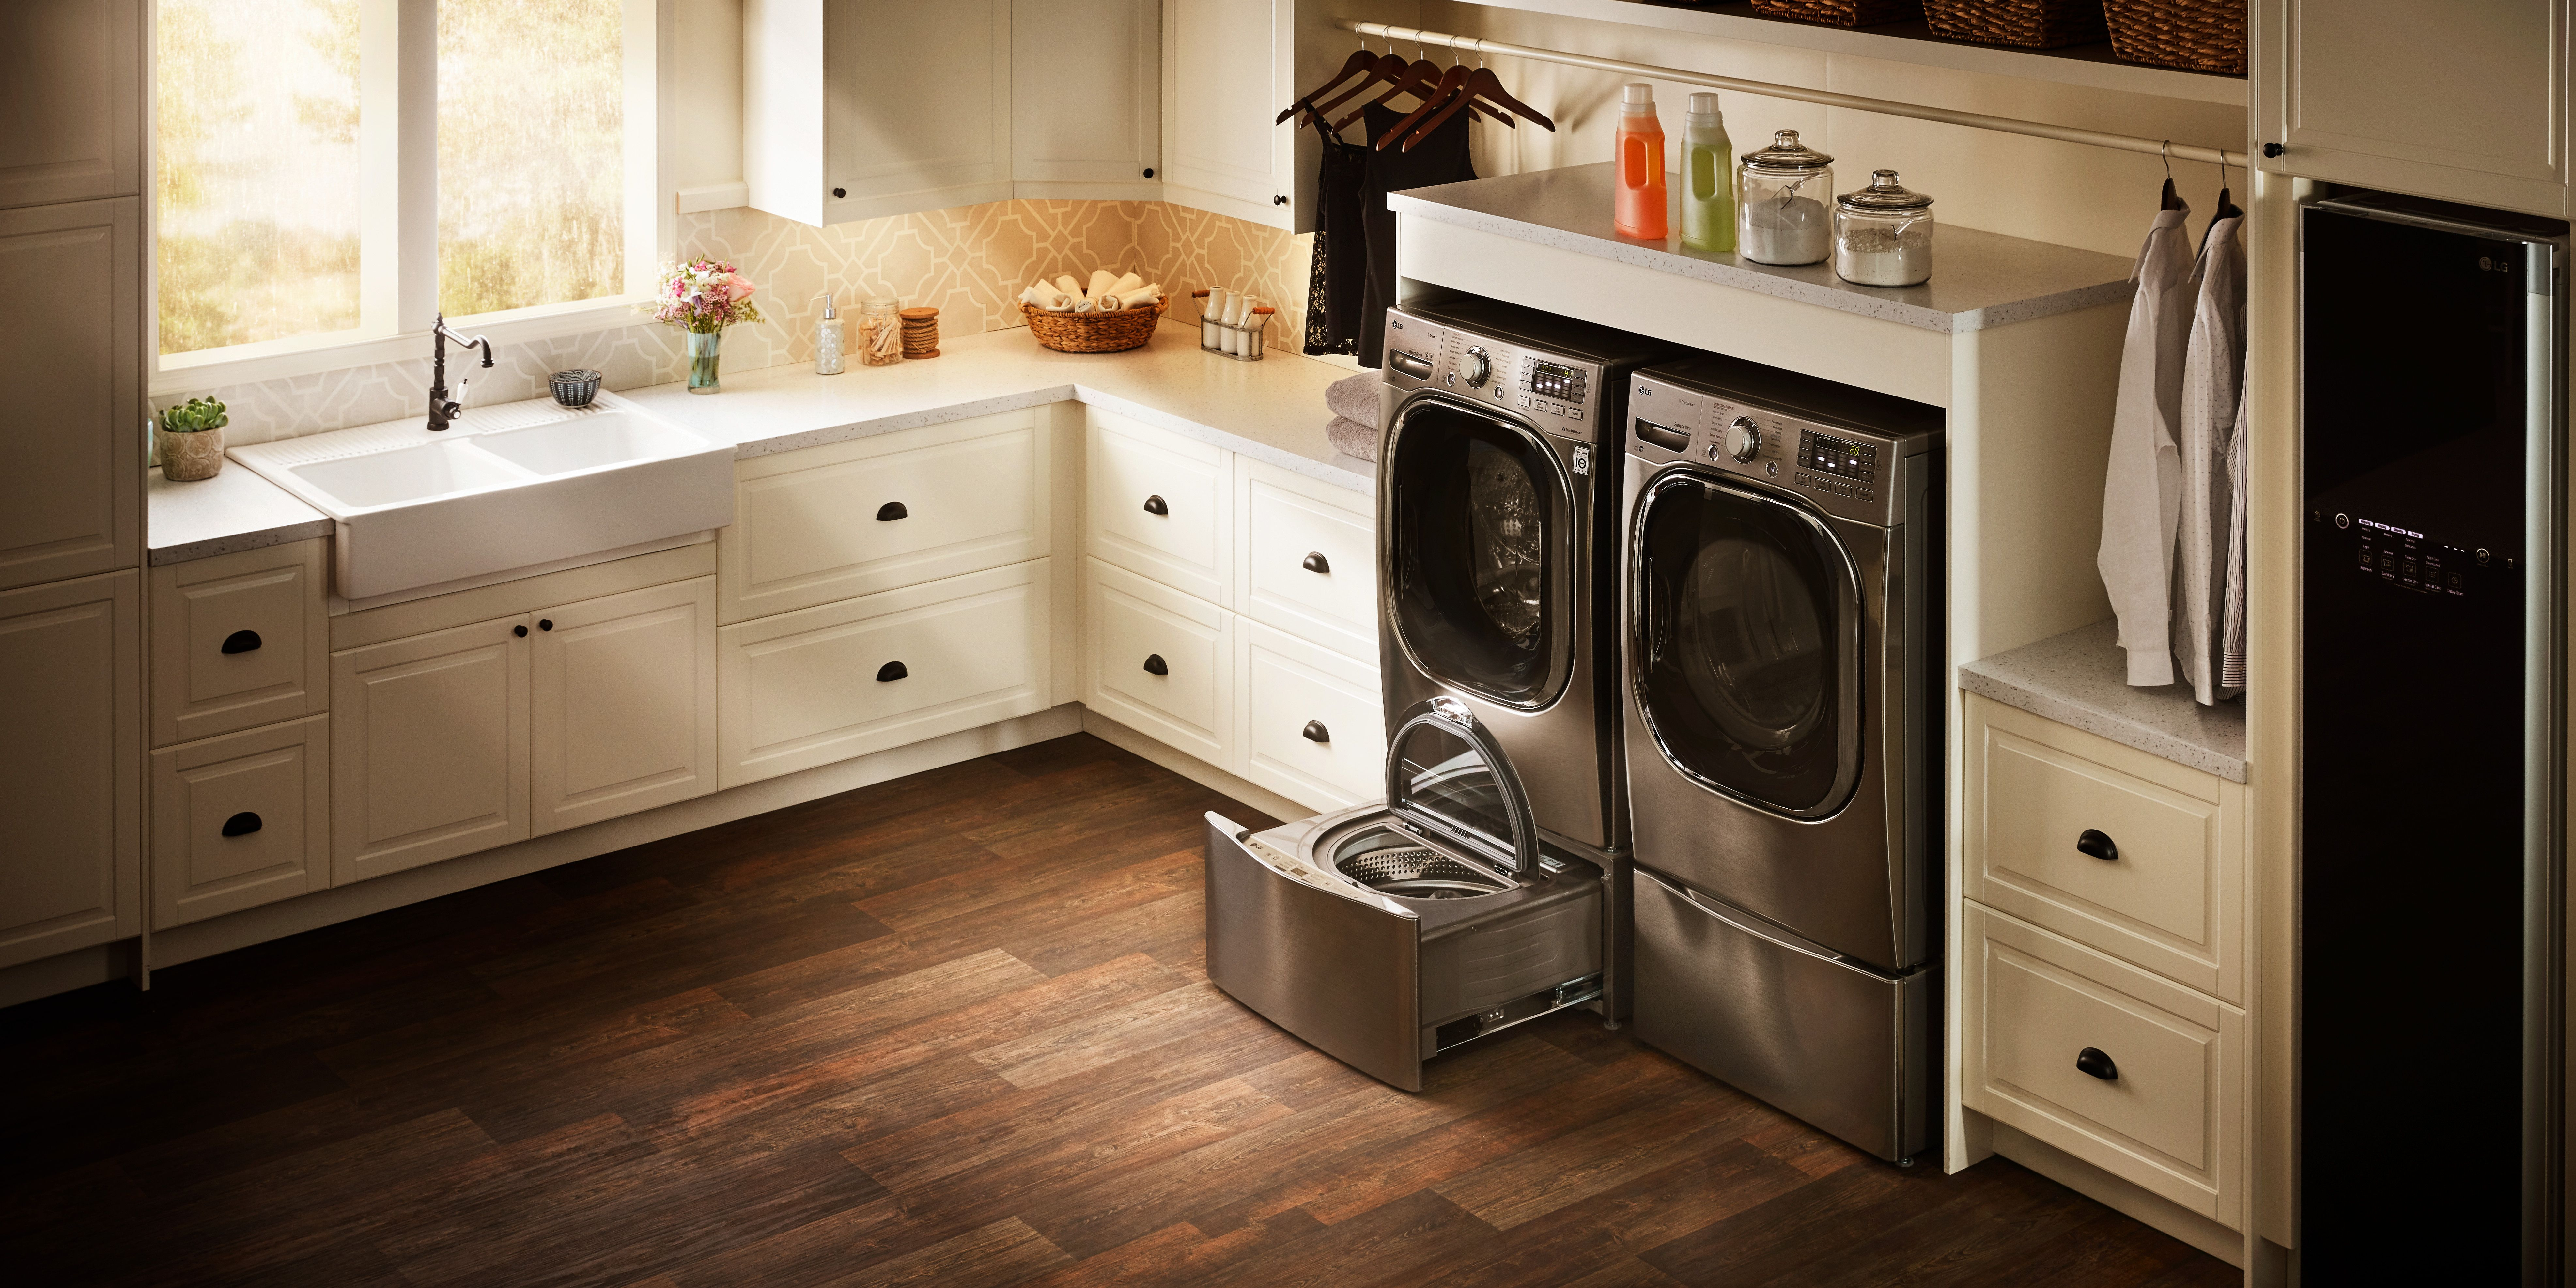 Pin By Nebraska Furniture Mart On Upgrade Your Home Kitchen And Bath Design Laundry Room Storage Cabinet Laundry Room Design